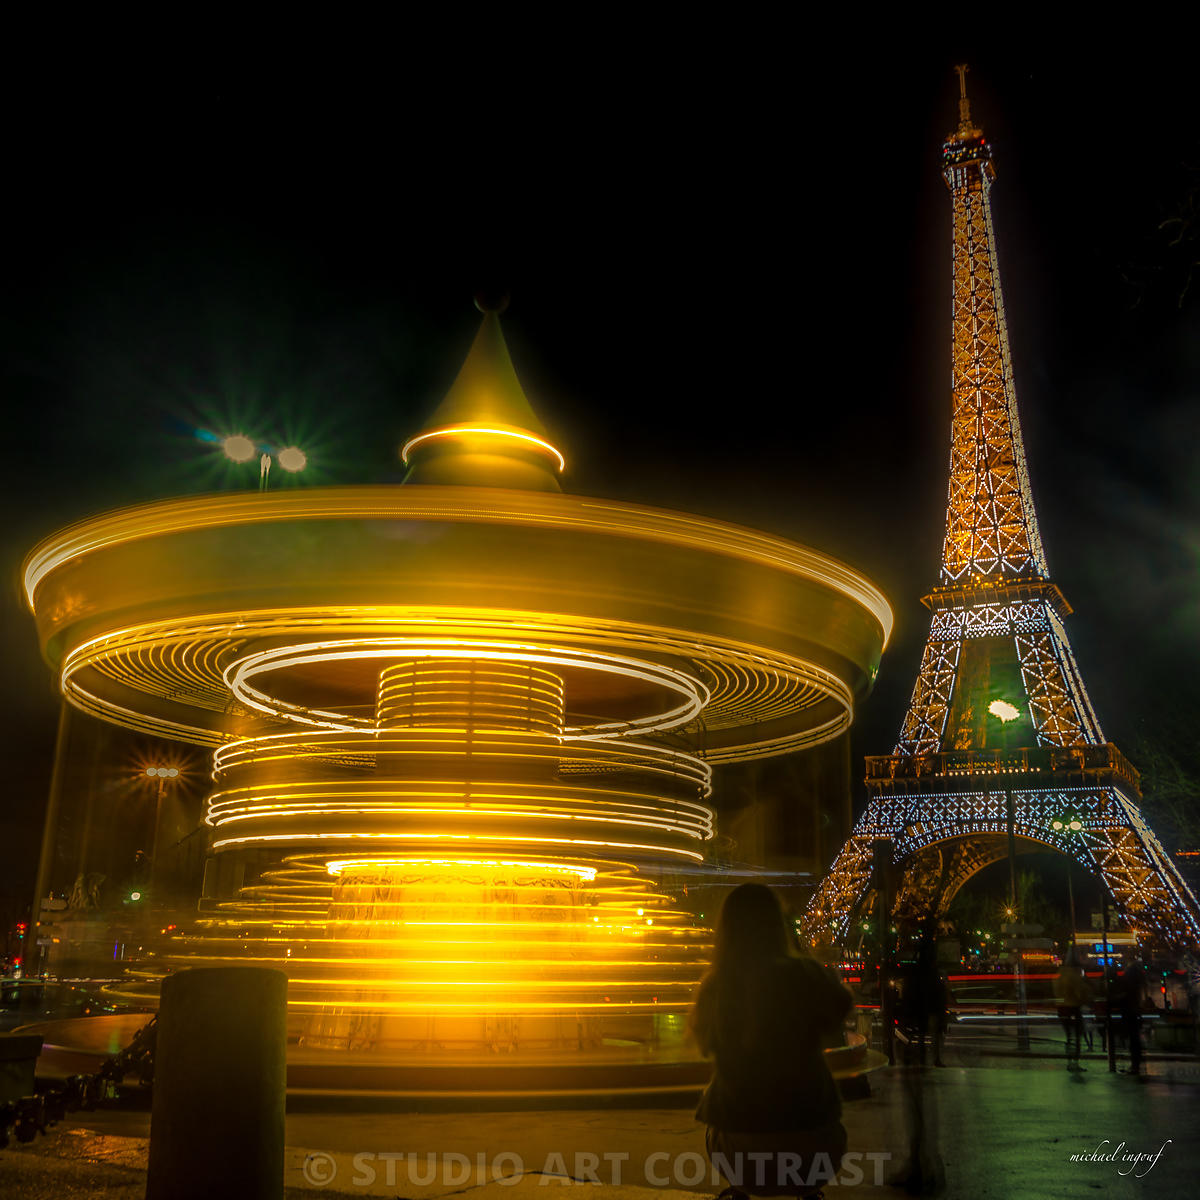 tour_eiffel_manège_longexpo_mouvement_caroussel_trocadero_night